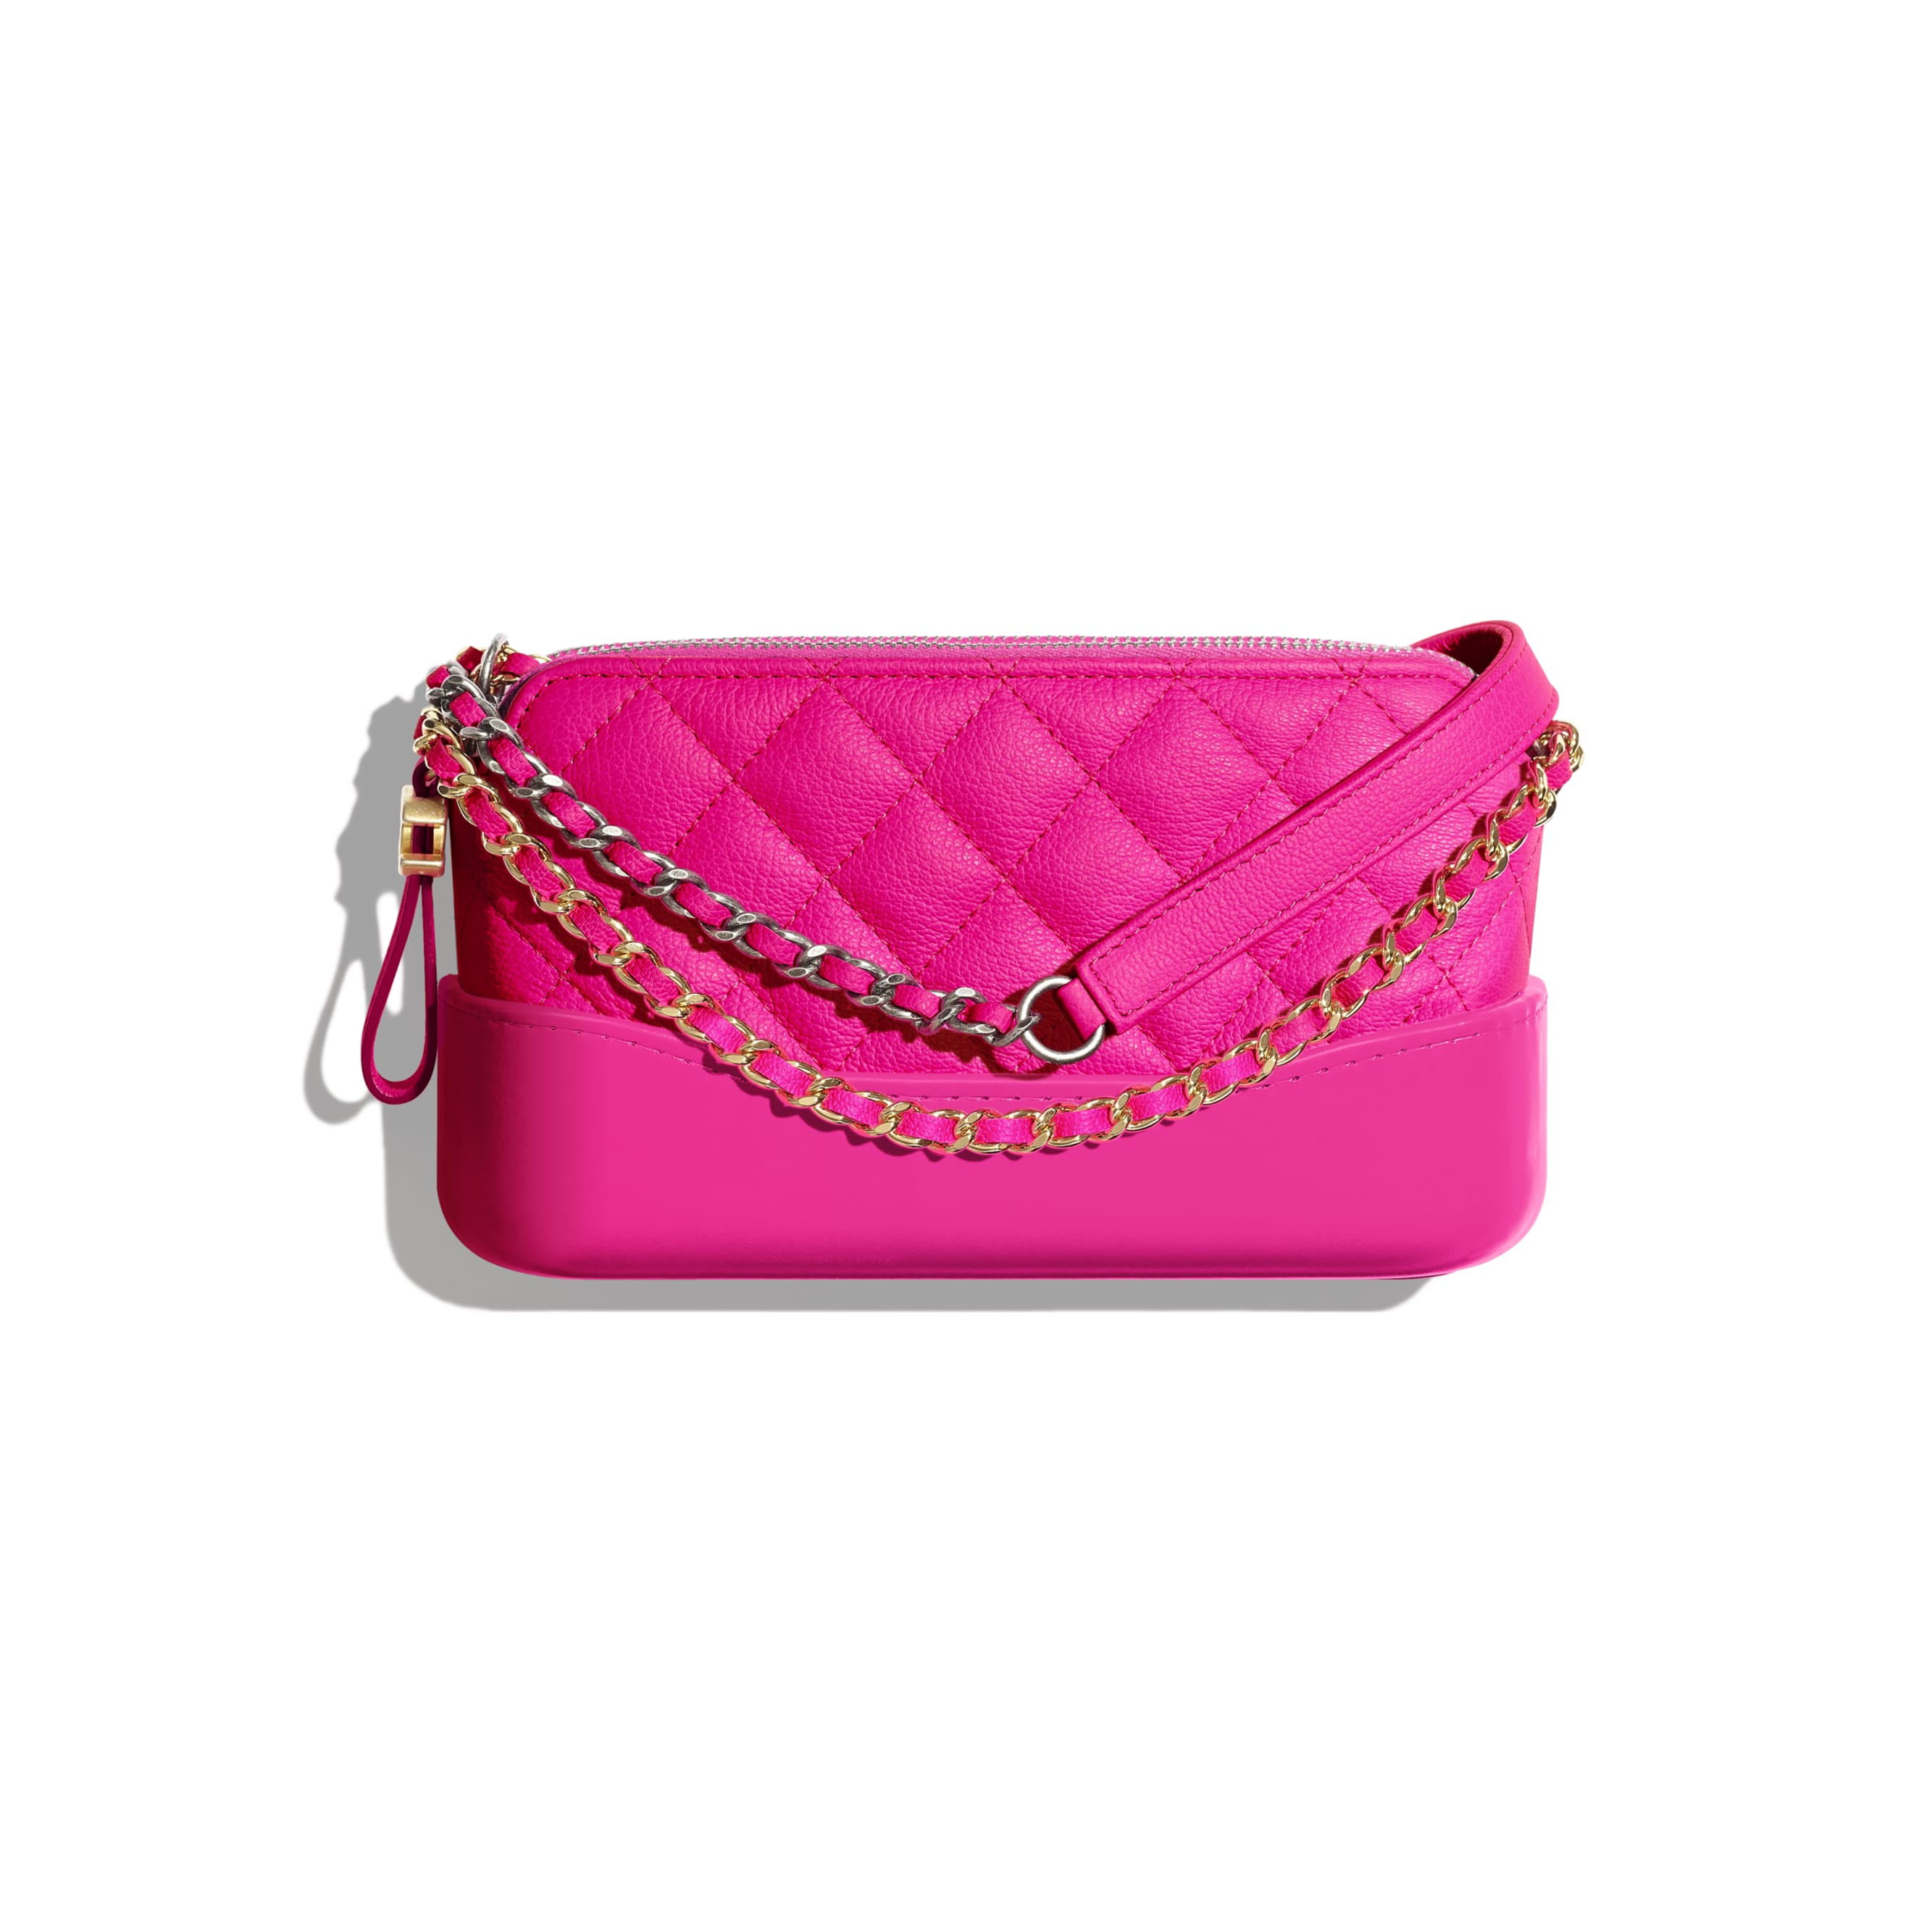 Clutch With Chain - Pink - Goatskin, Gold-Tone & Silver-Tone Metal - CHANEL - Default view - see standard sized version